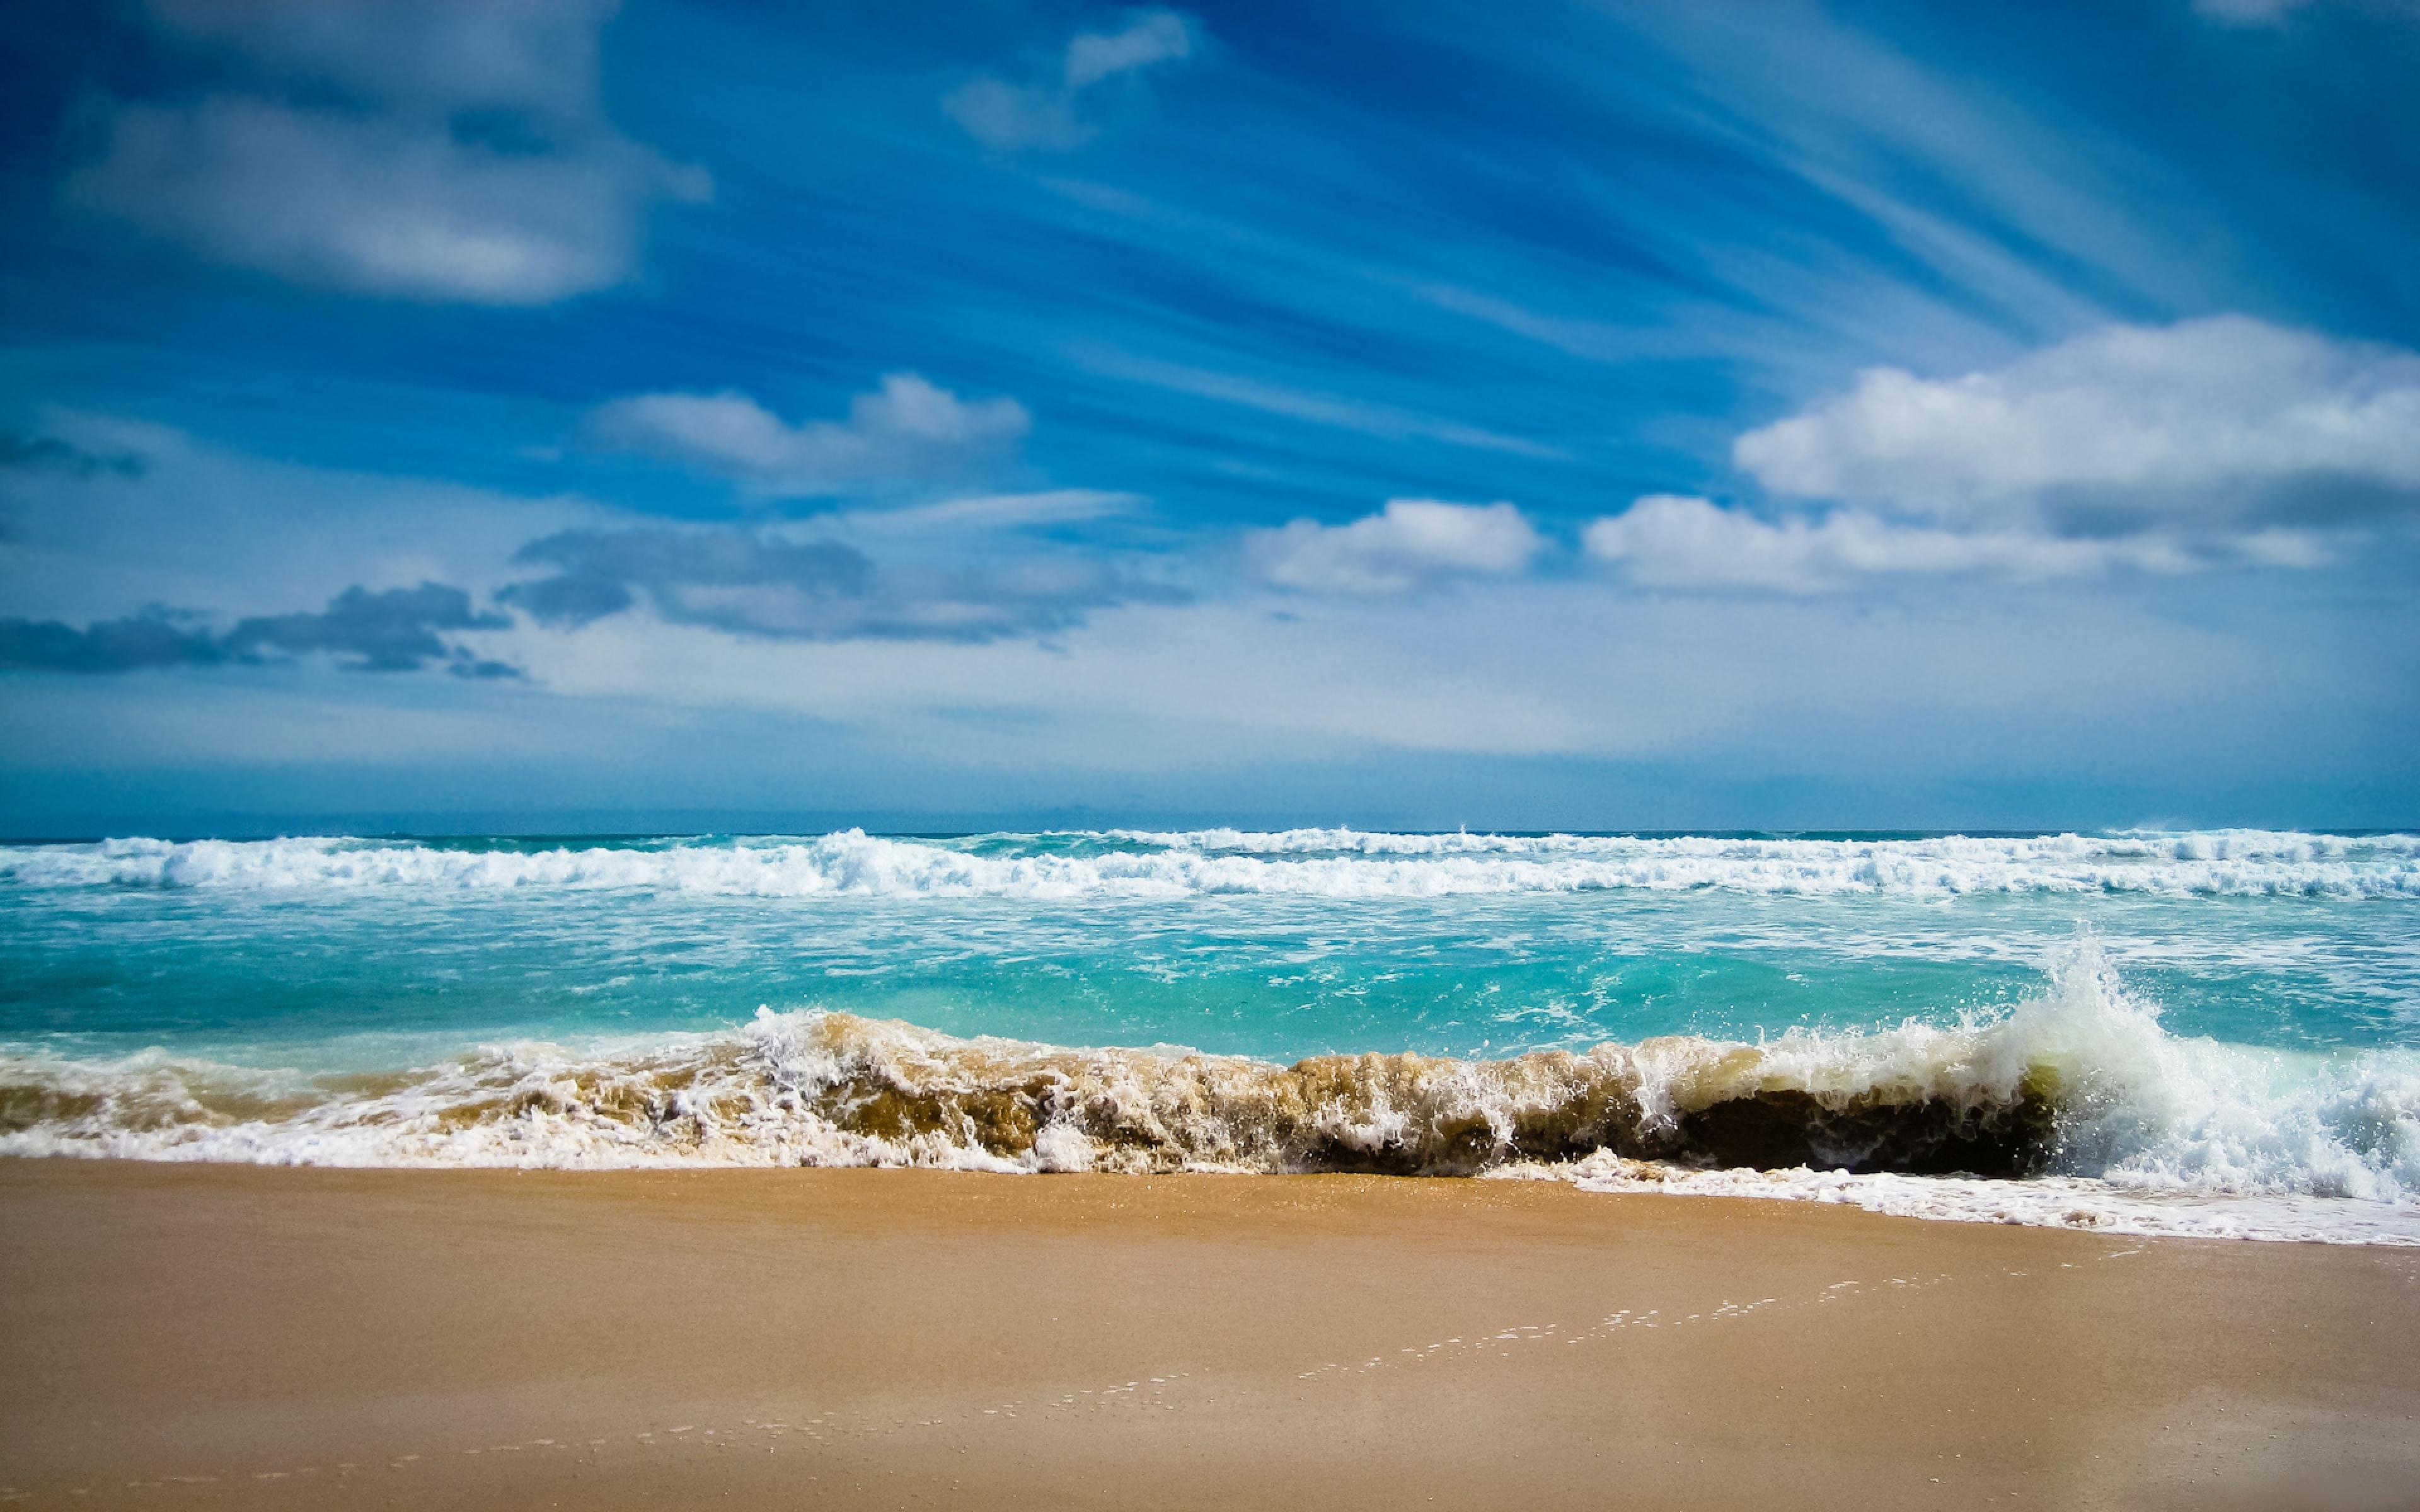 3840x2400 Wallpaper ocean sea gulf waves blue water coast beach 3840x2400